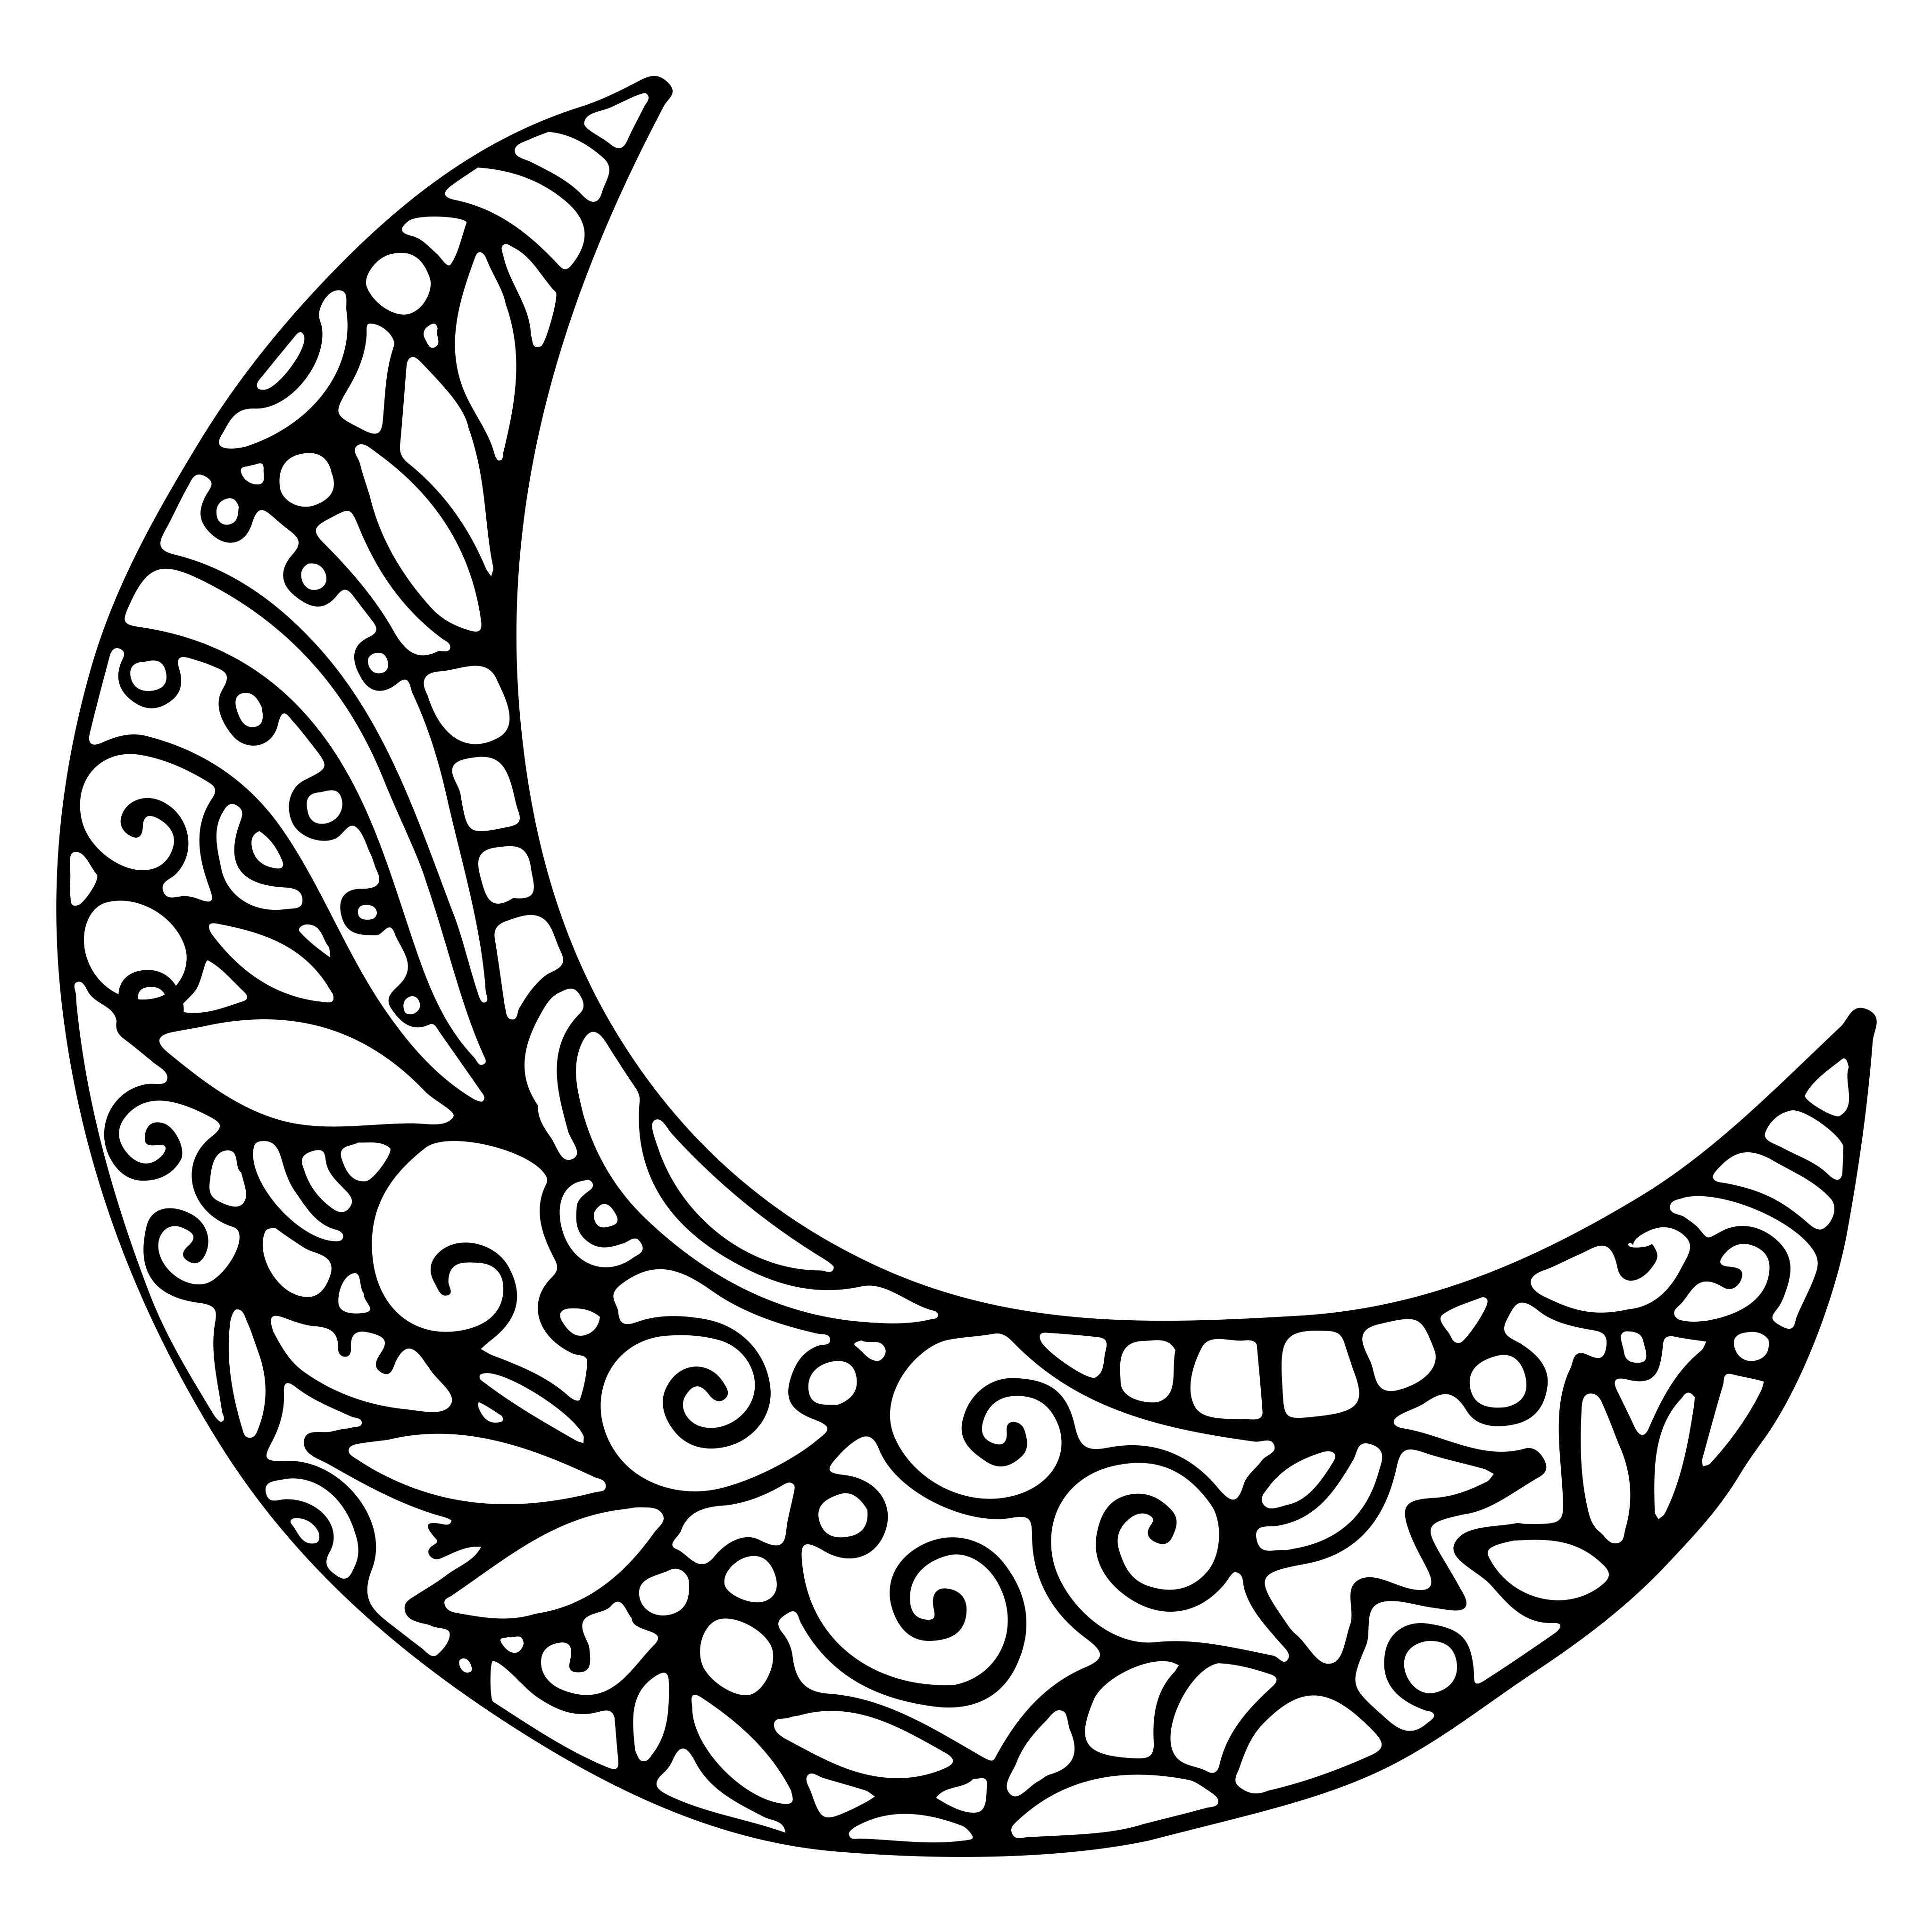 moon mandala coloring pages sun and moon mandala coloring pages free mandala coloring mandala moon pages